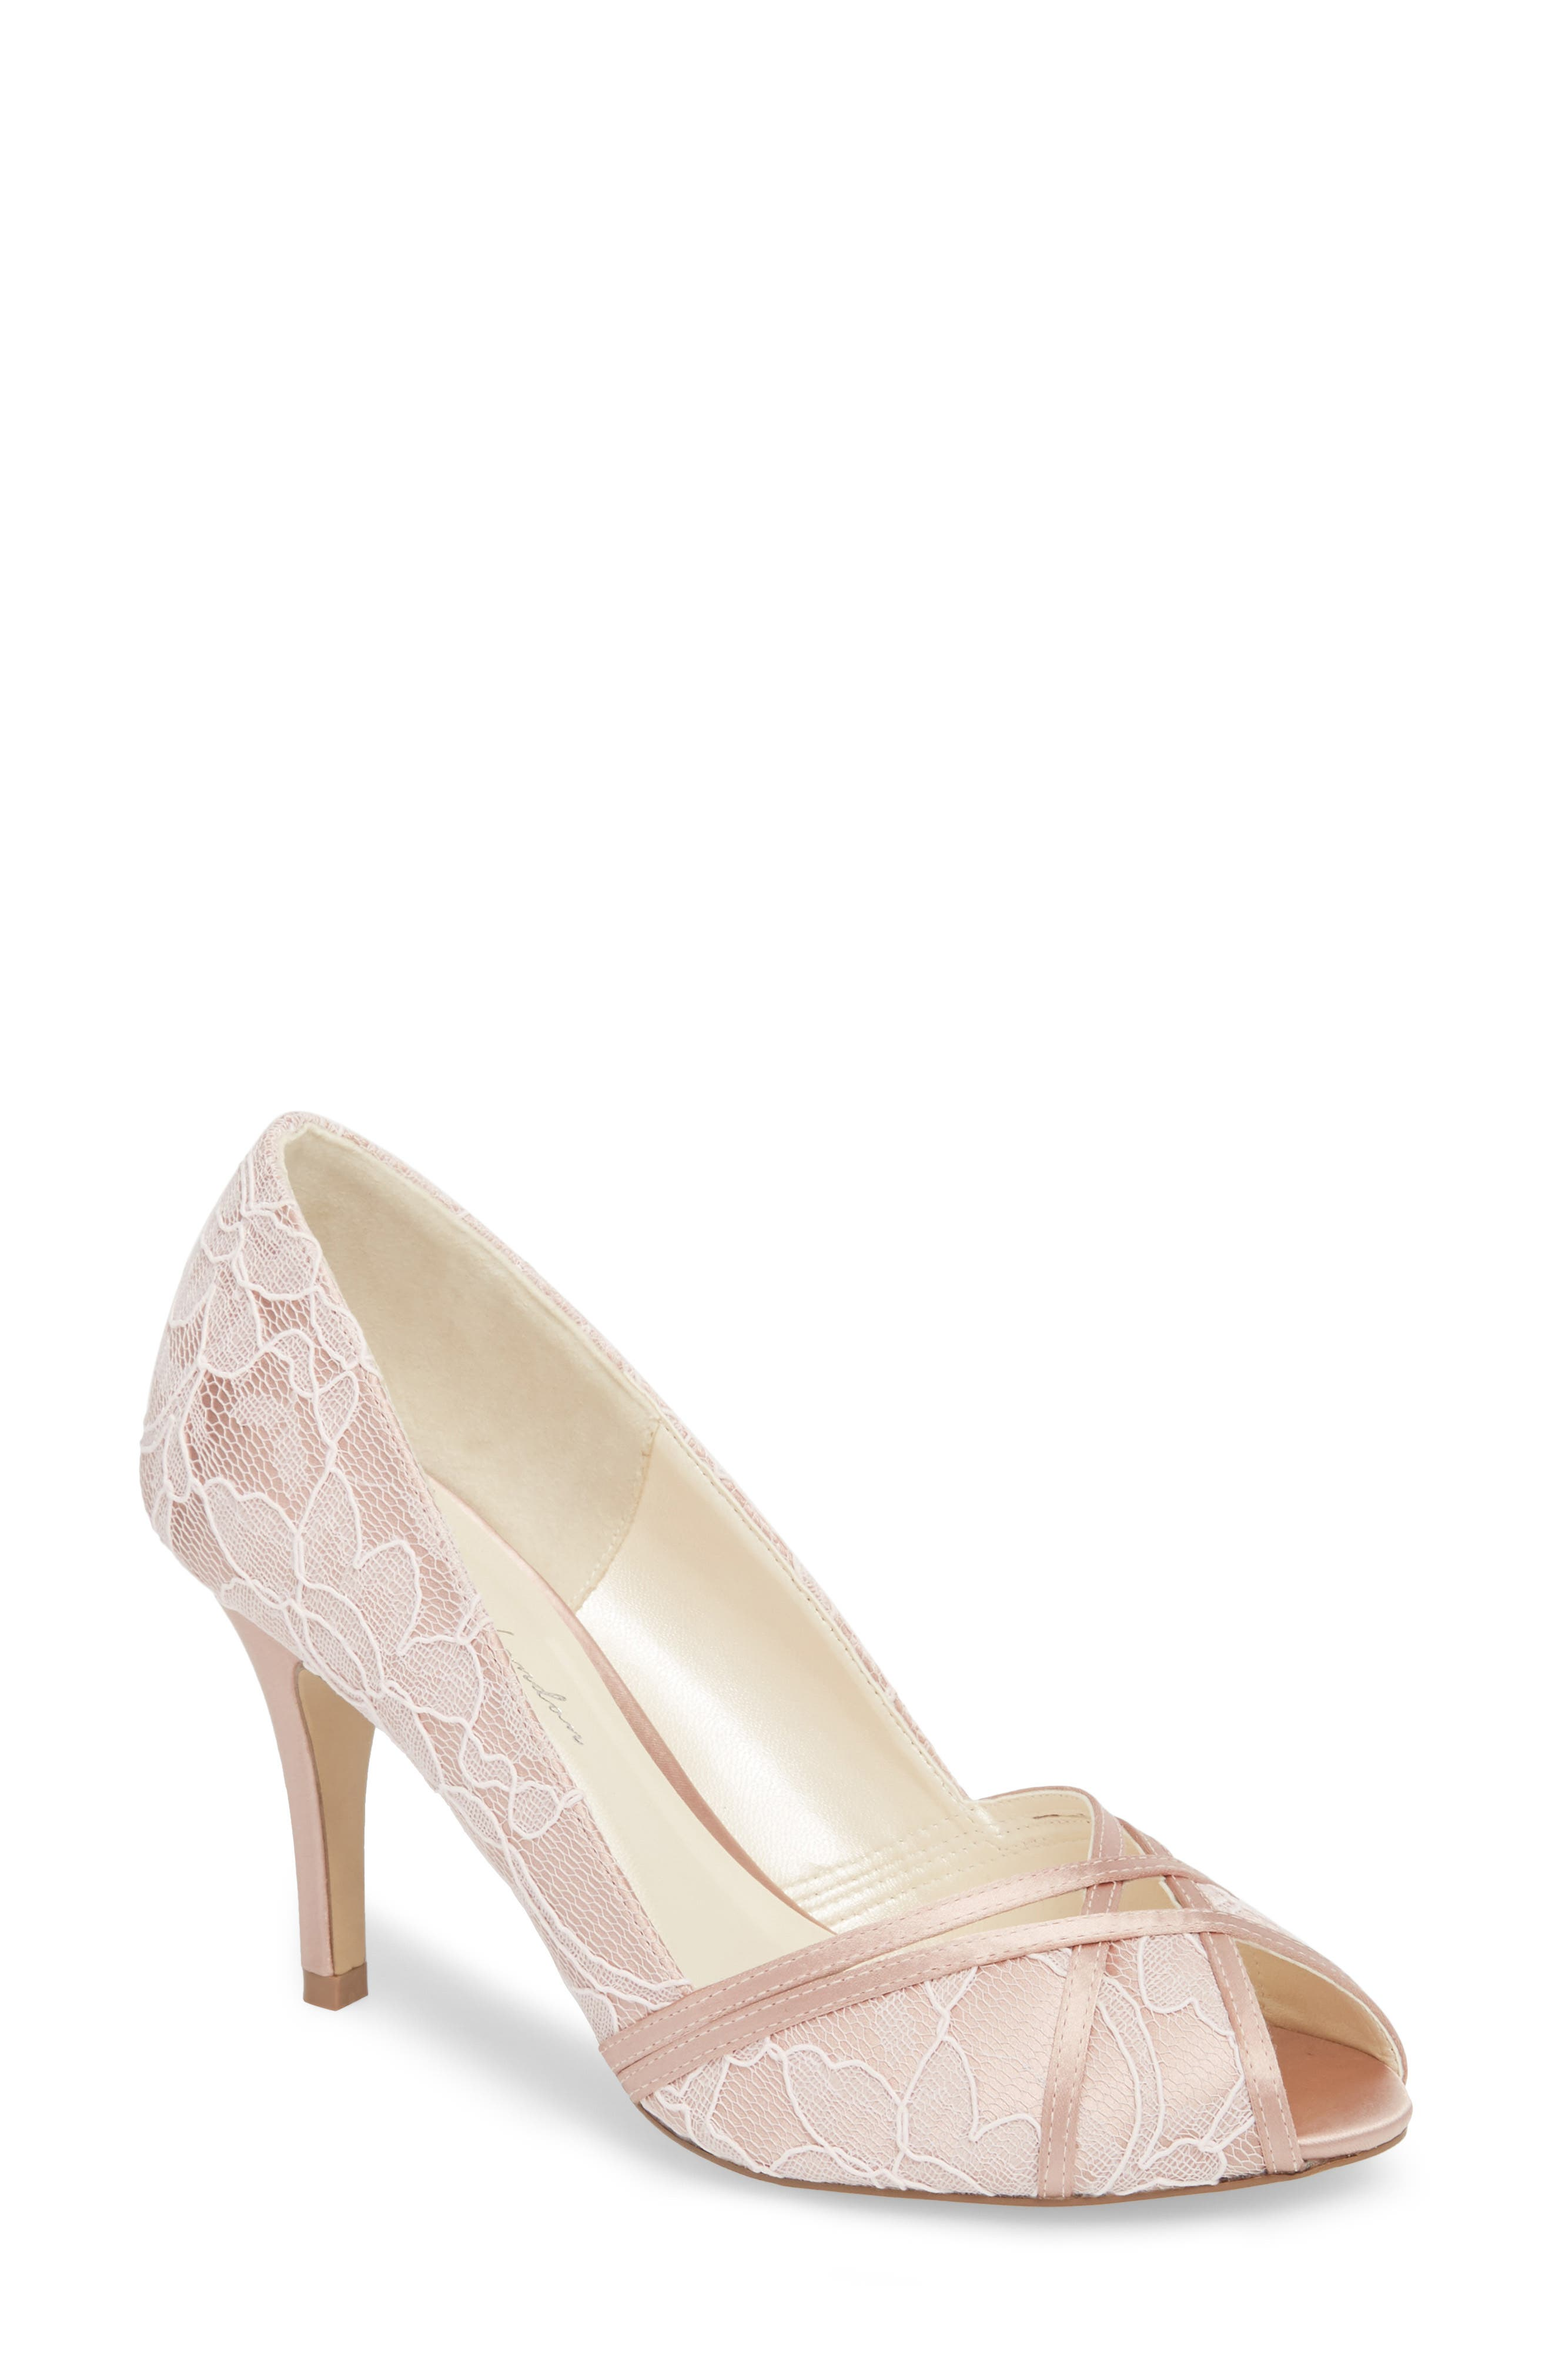 Cherie Embroidered Peep Toe Pump,                         Main,                         color, BLUSH SATIN